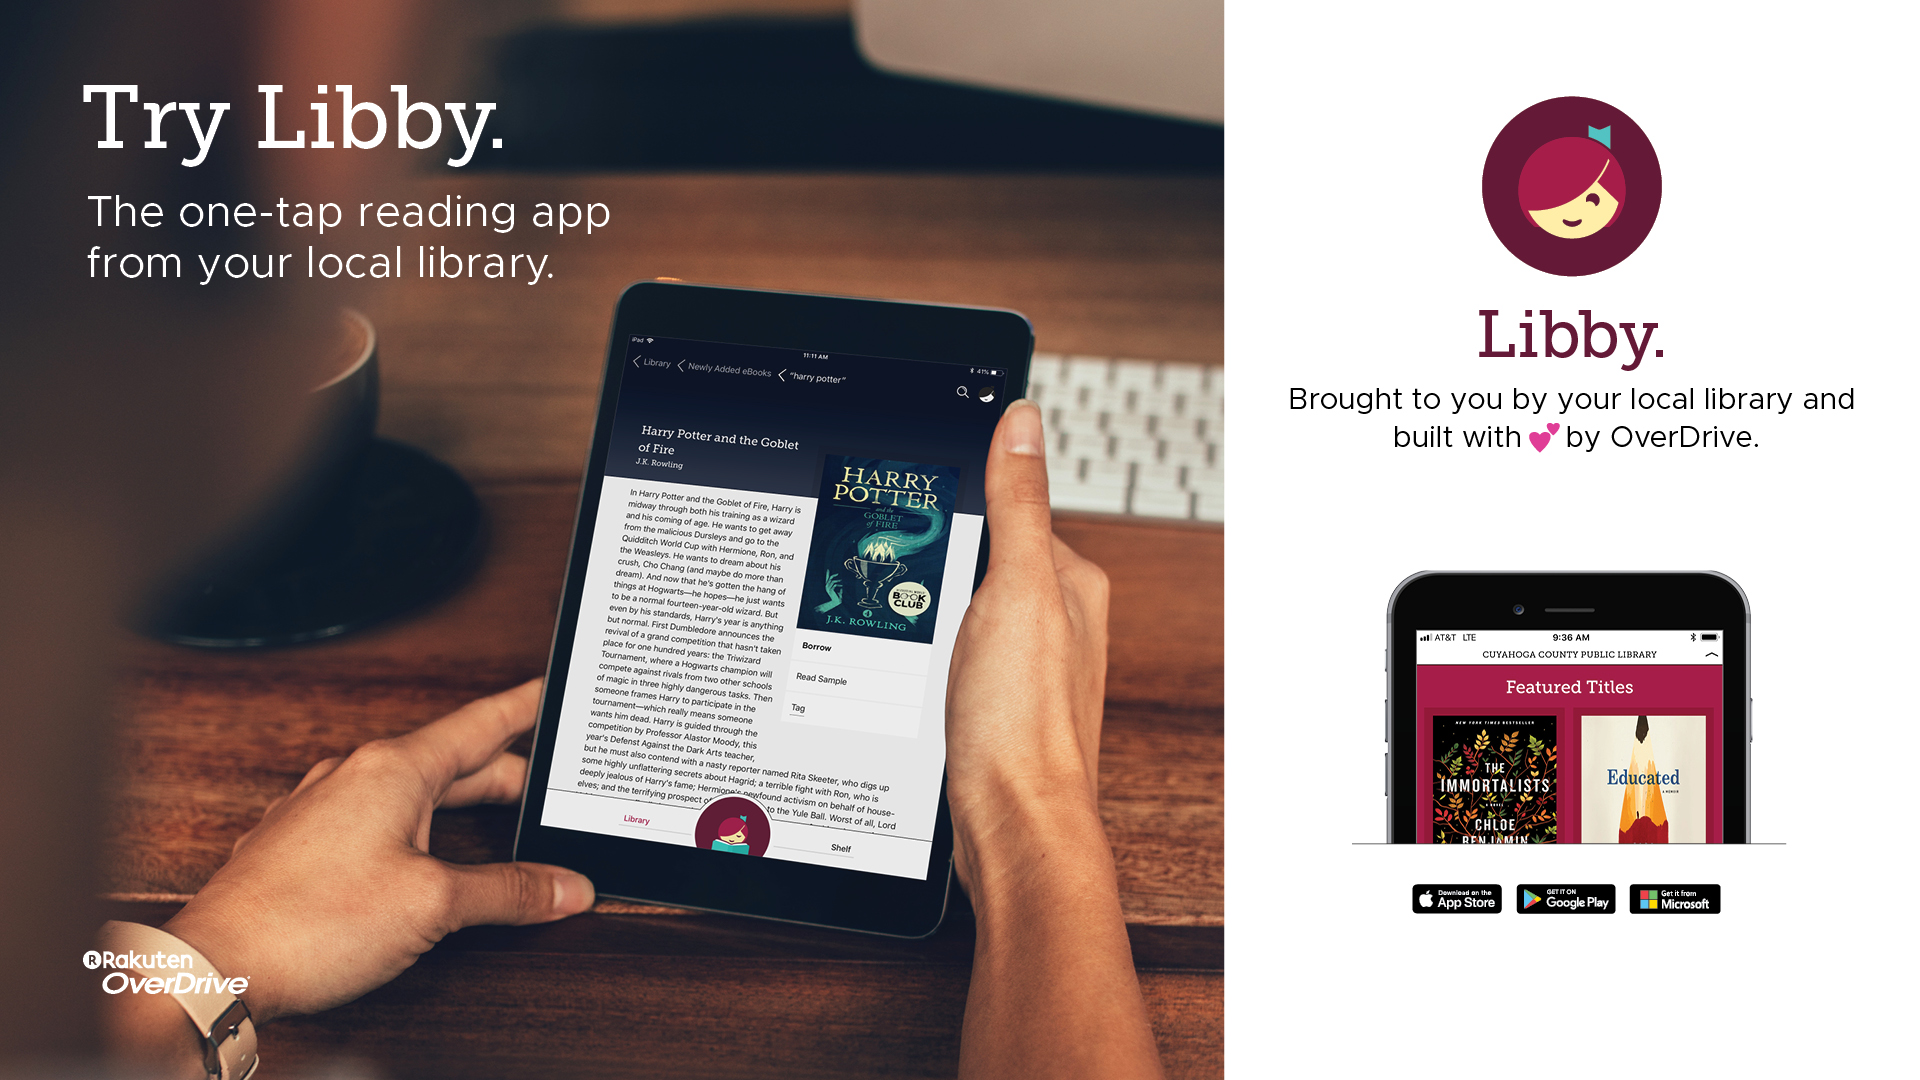 Try Libby the Overdrive eBook app